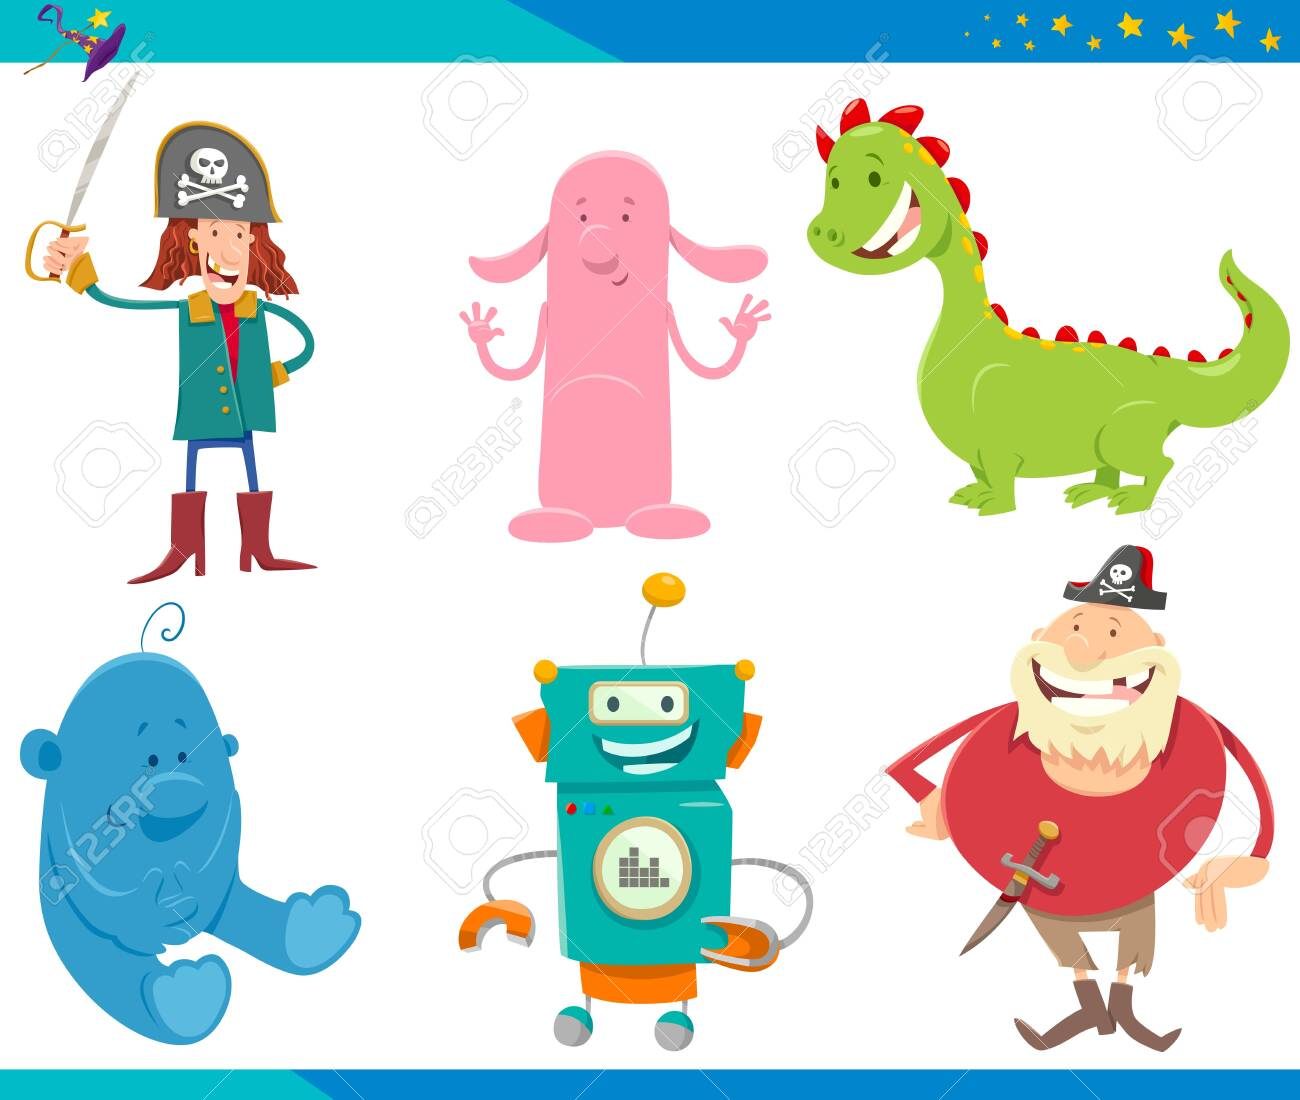 Cartoon Illustrations of Funny Fantasy or Fairy Tale Characters Set - 124349056